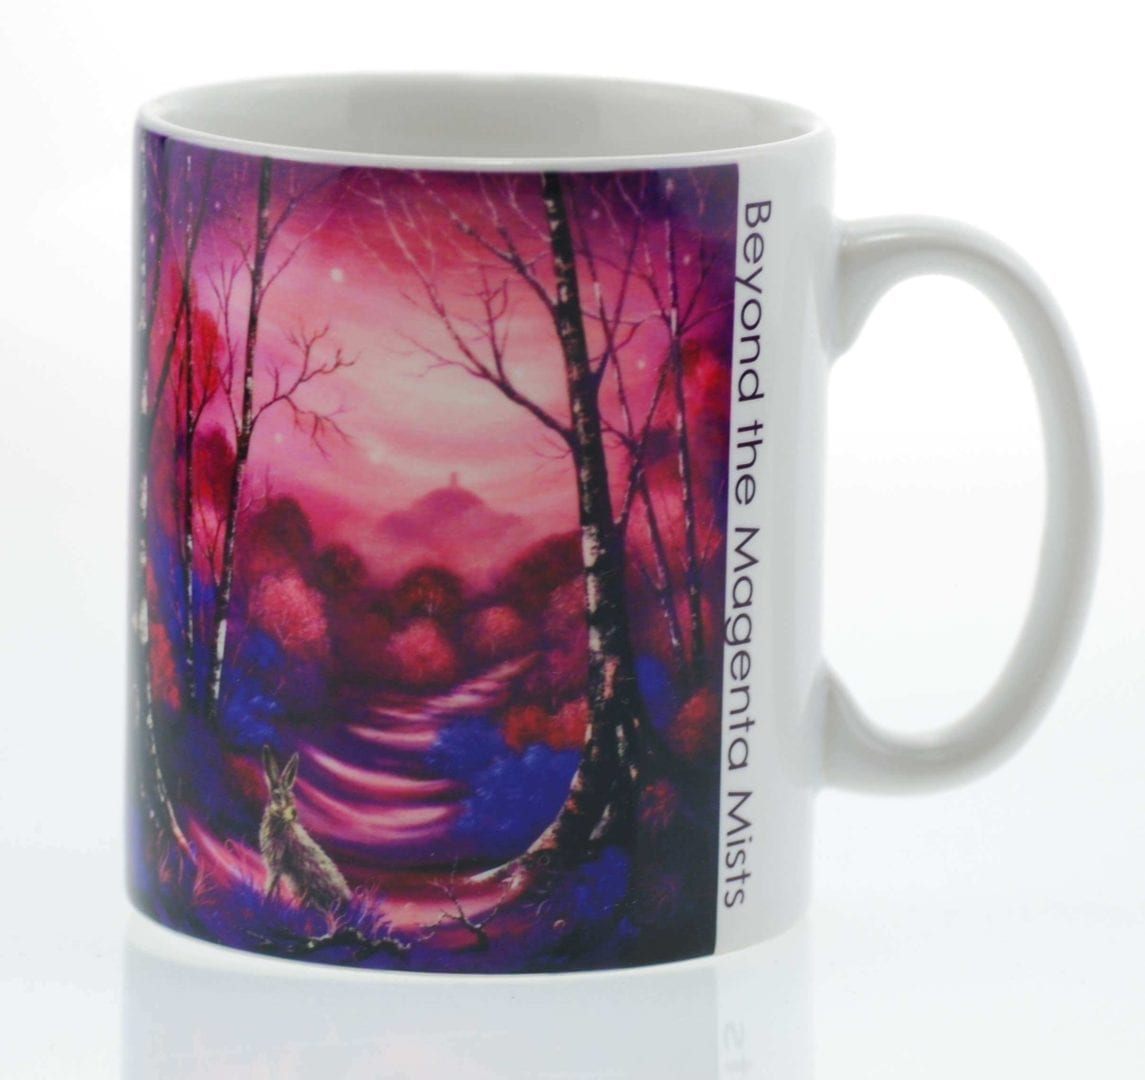 Beyond the Magenta Mists Mug